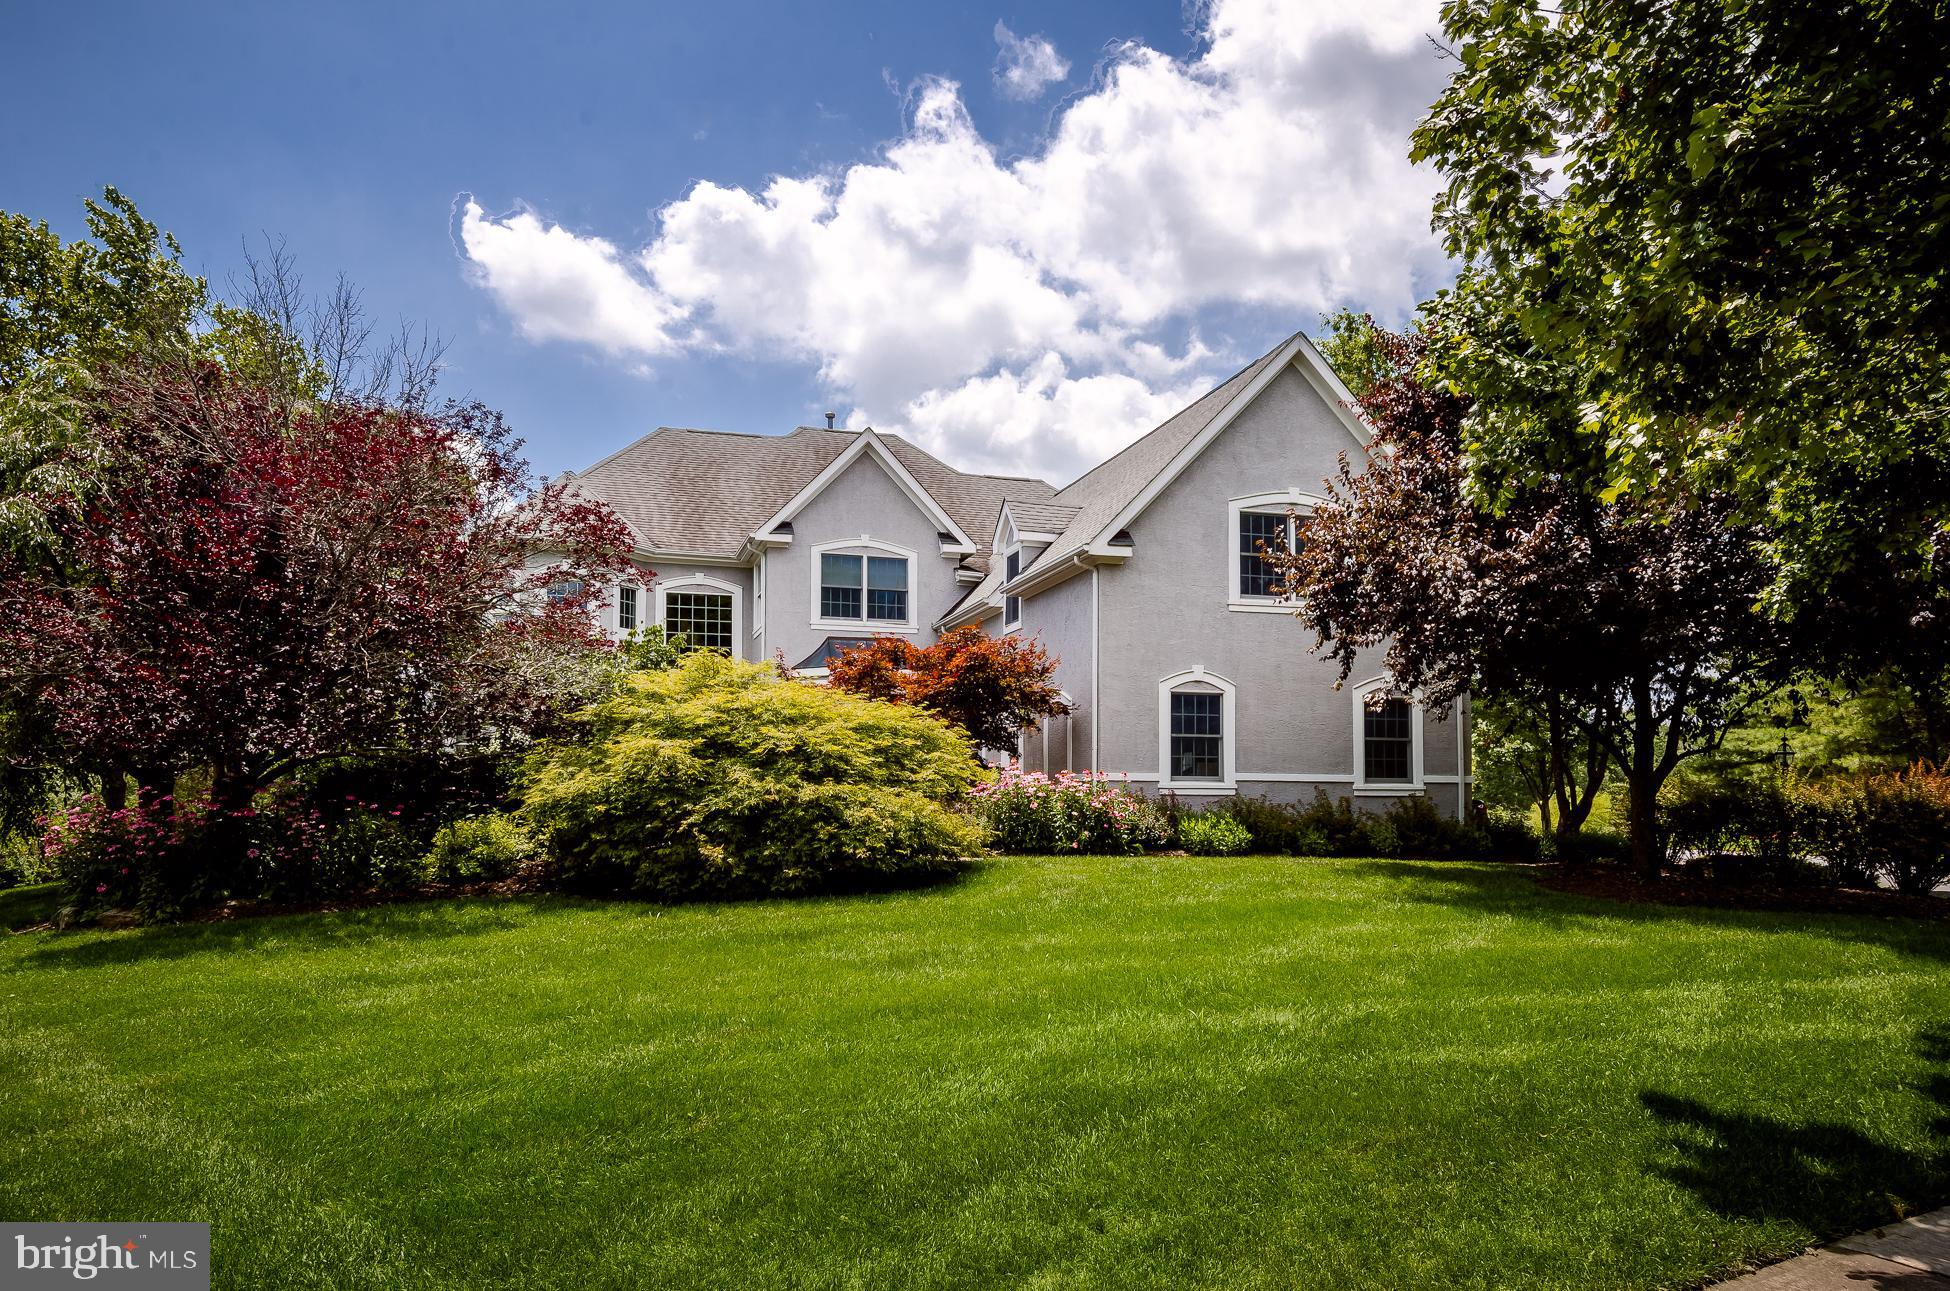 7 KITTANSETT COURT, SKILLMAN, NJ 08558